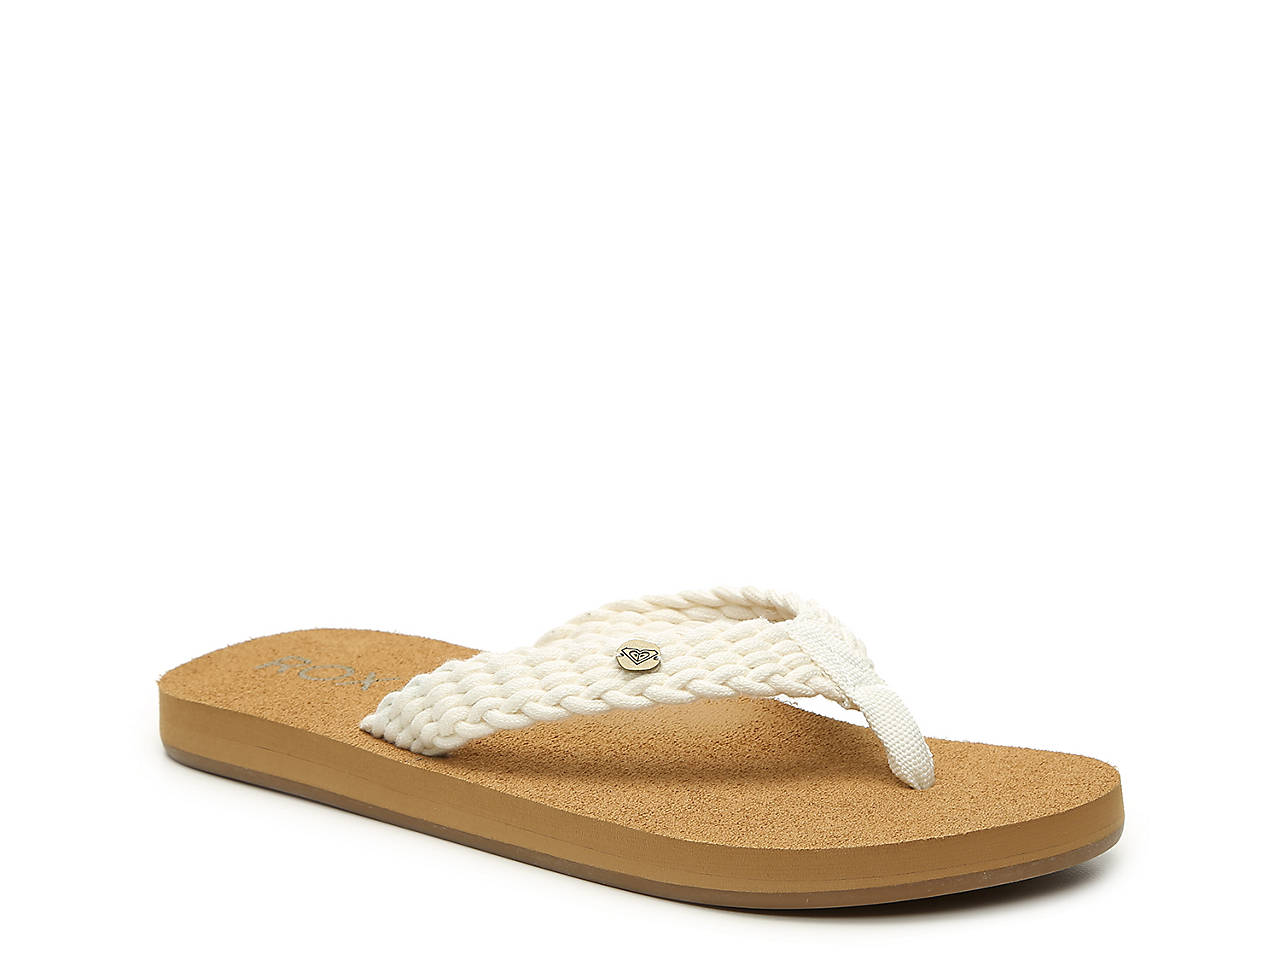 Women's Roxy Tidepool II Woven Flip-Flops buy cheap real nHXLhuhgHG